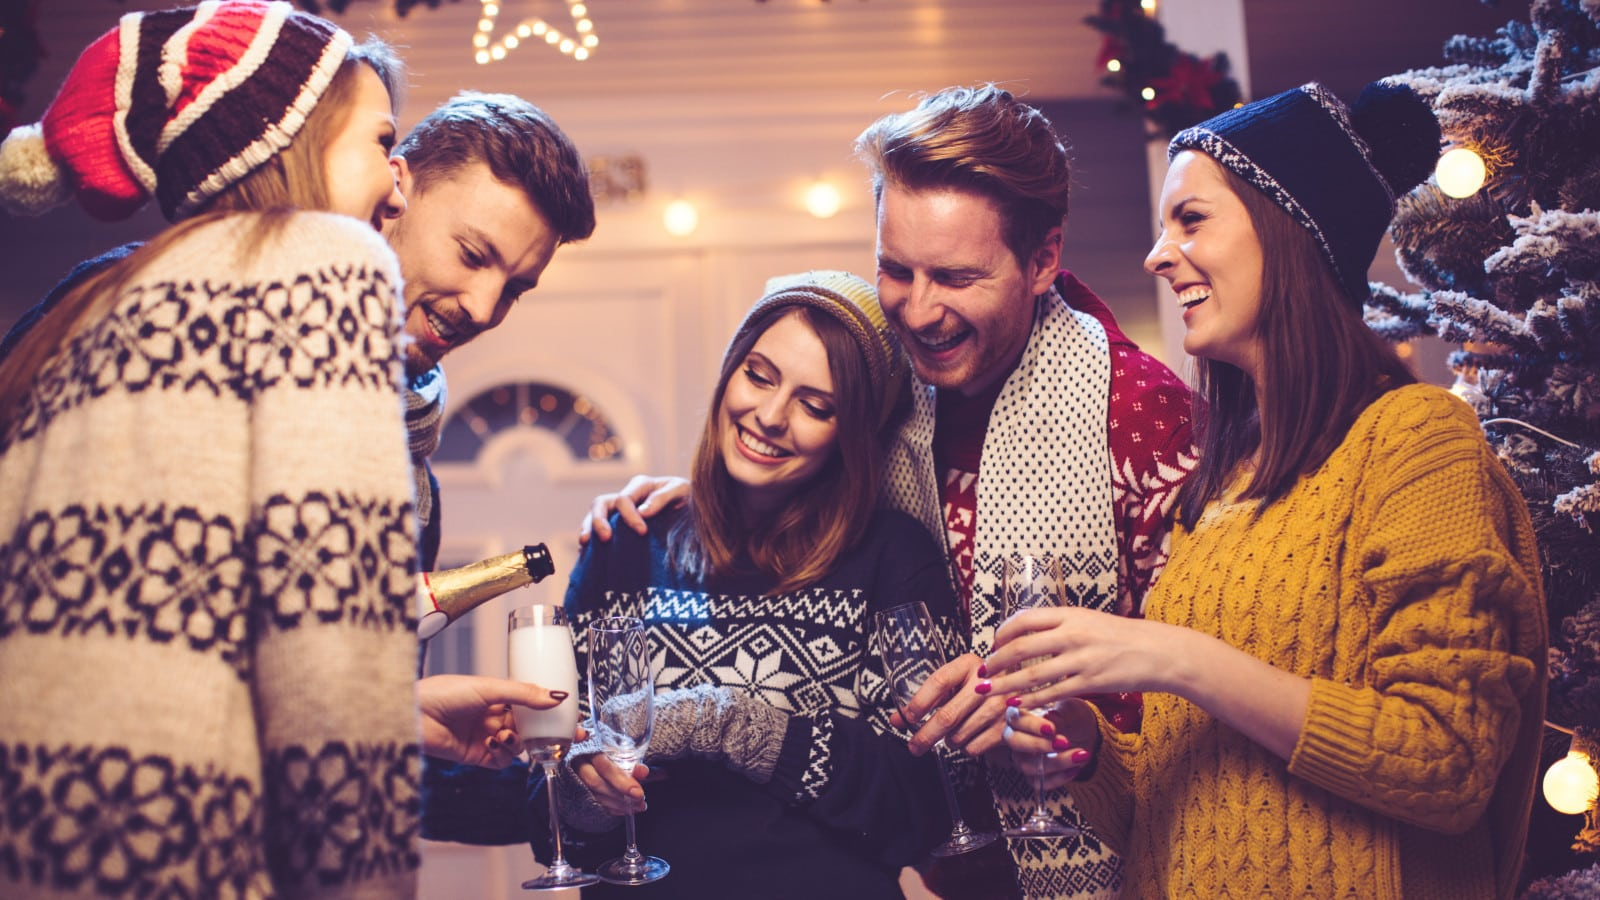 Group Of Friends Celebrating The Holidays Stock Photo